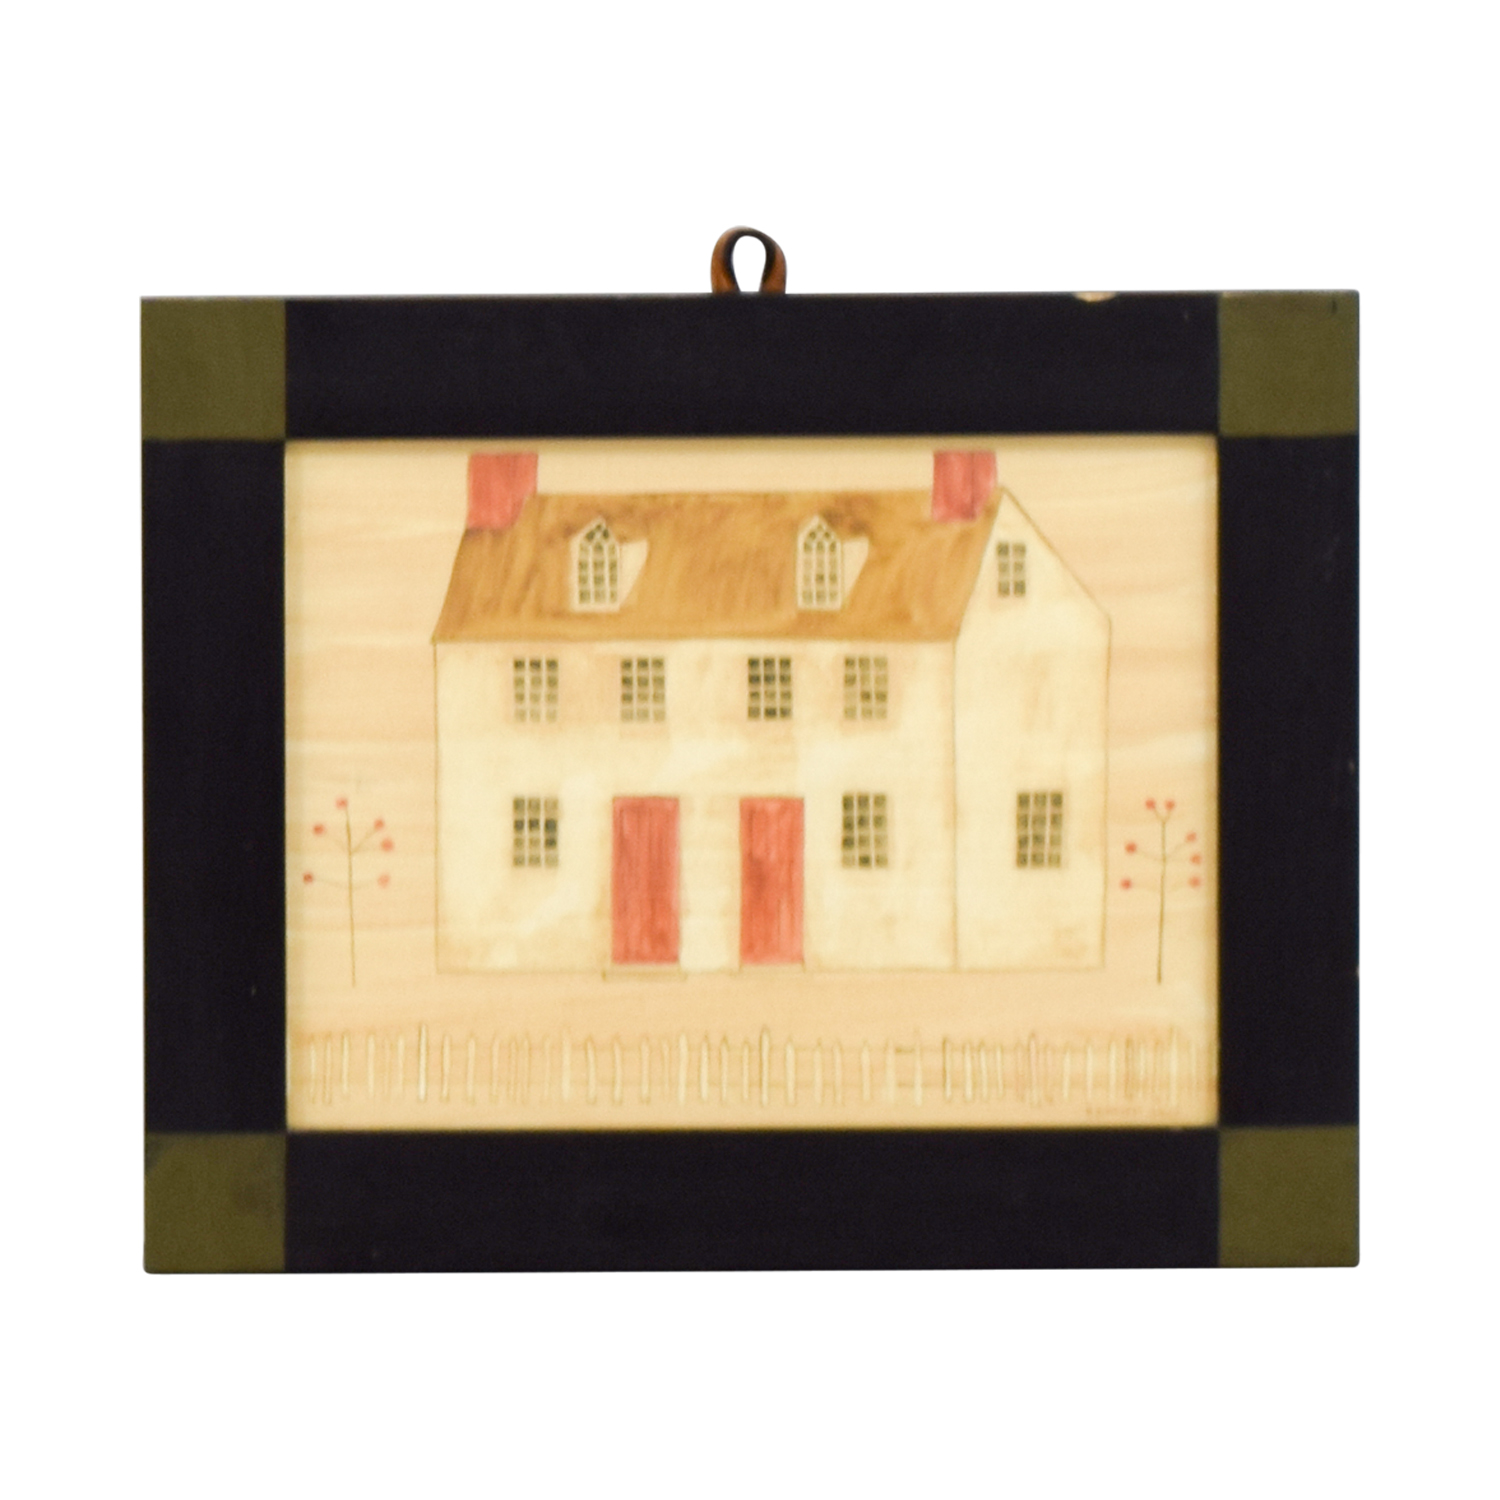 buy Framed Rustic Farmhouse Artwork Decor